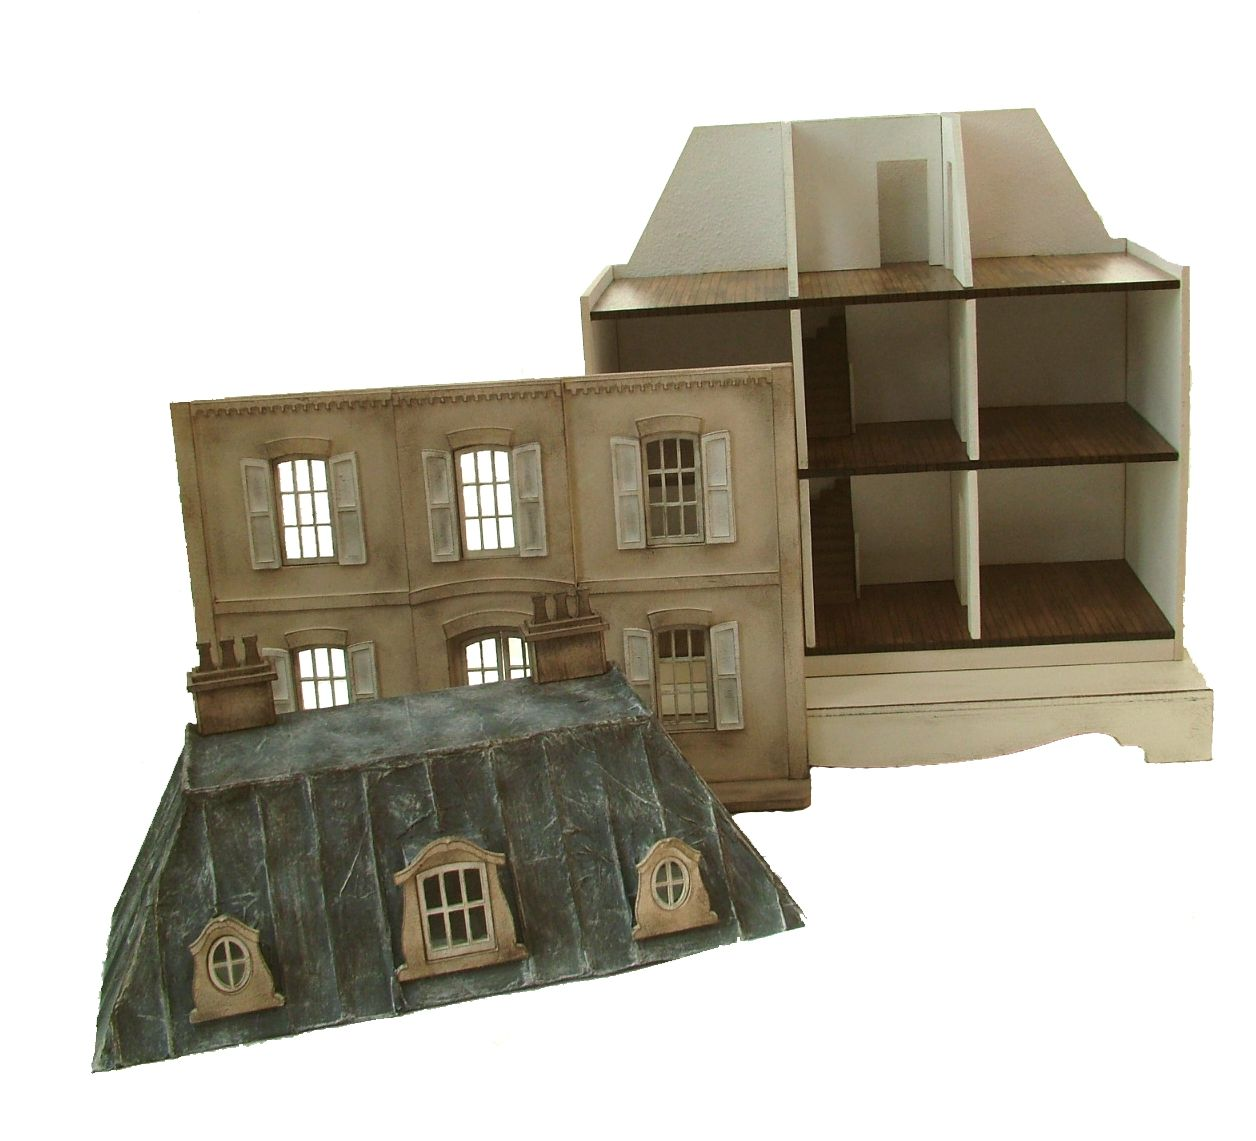 1 48th Quarter Scale 'Le Petit Palais' Dolls House Kit By